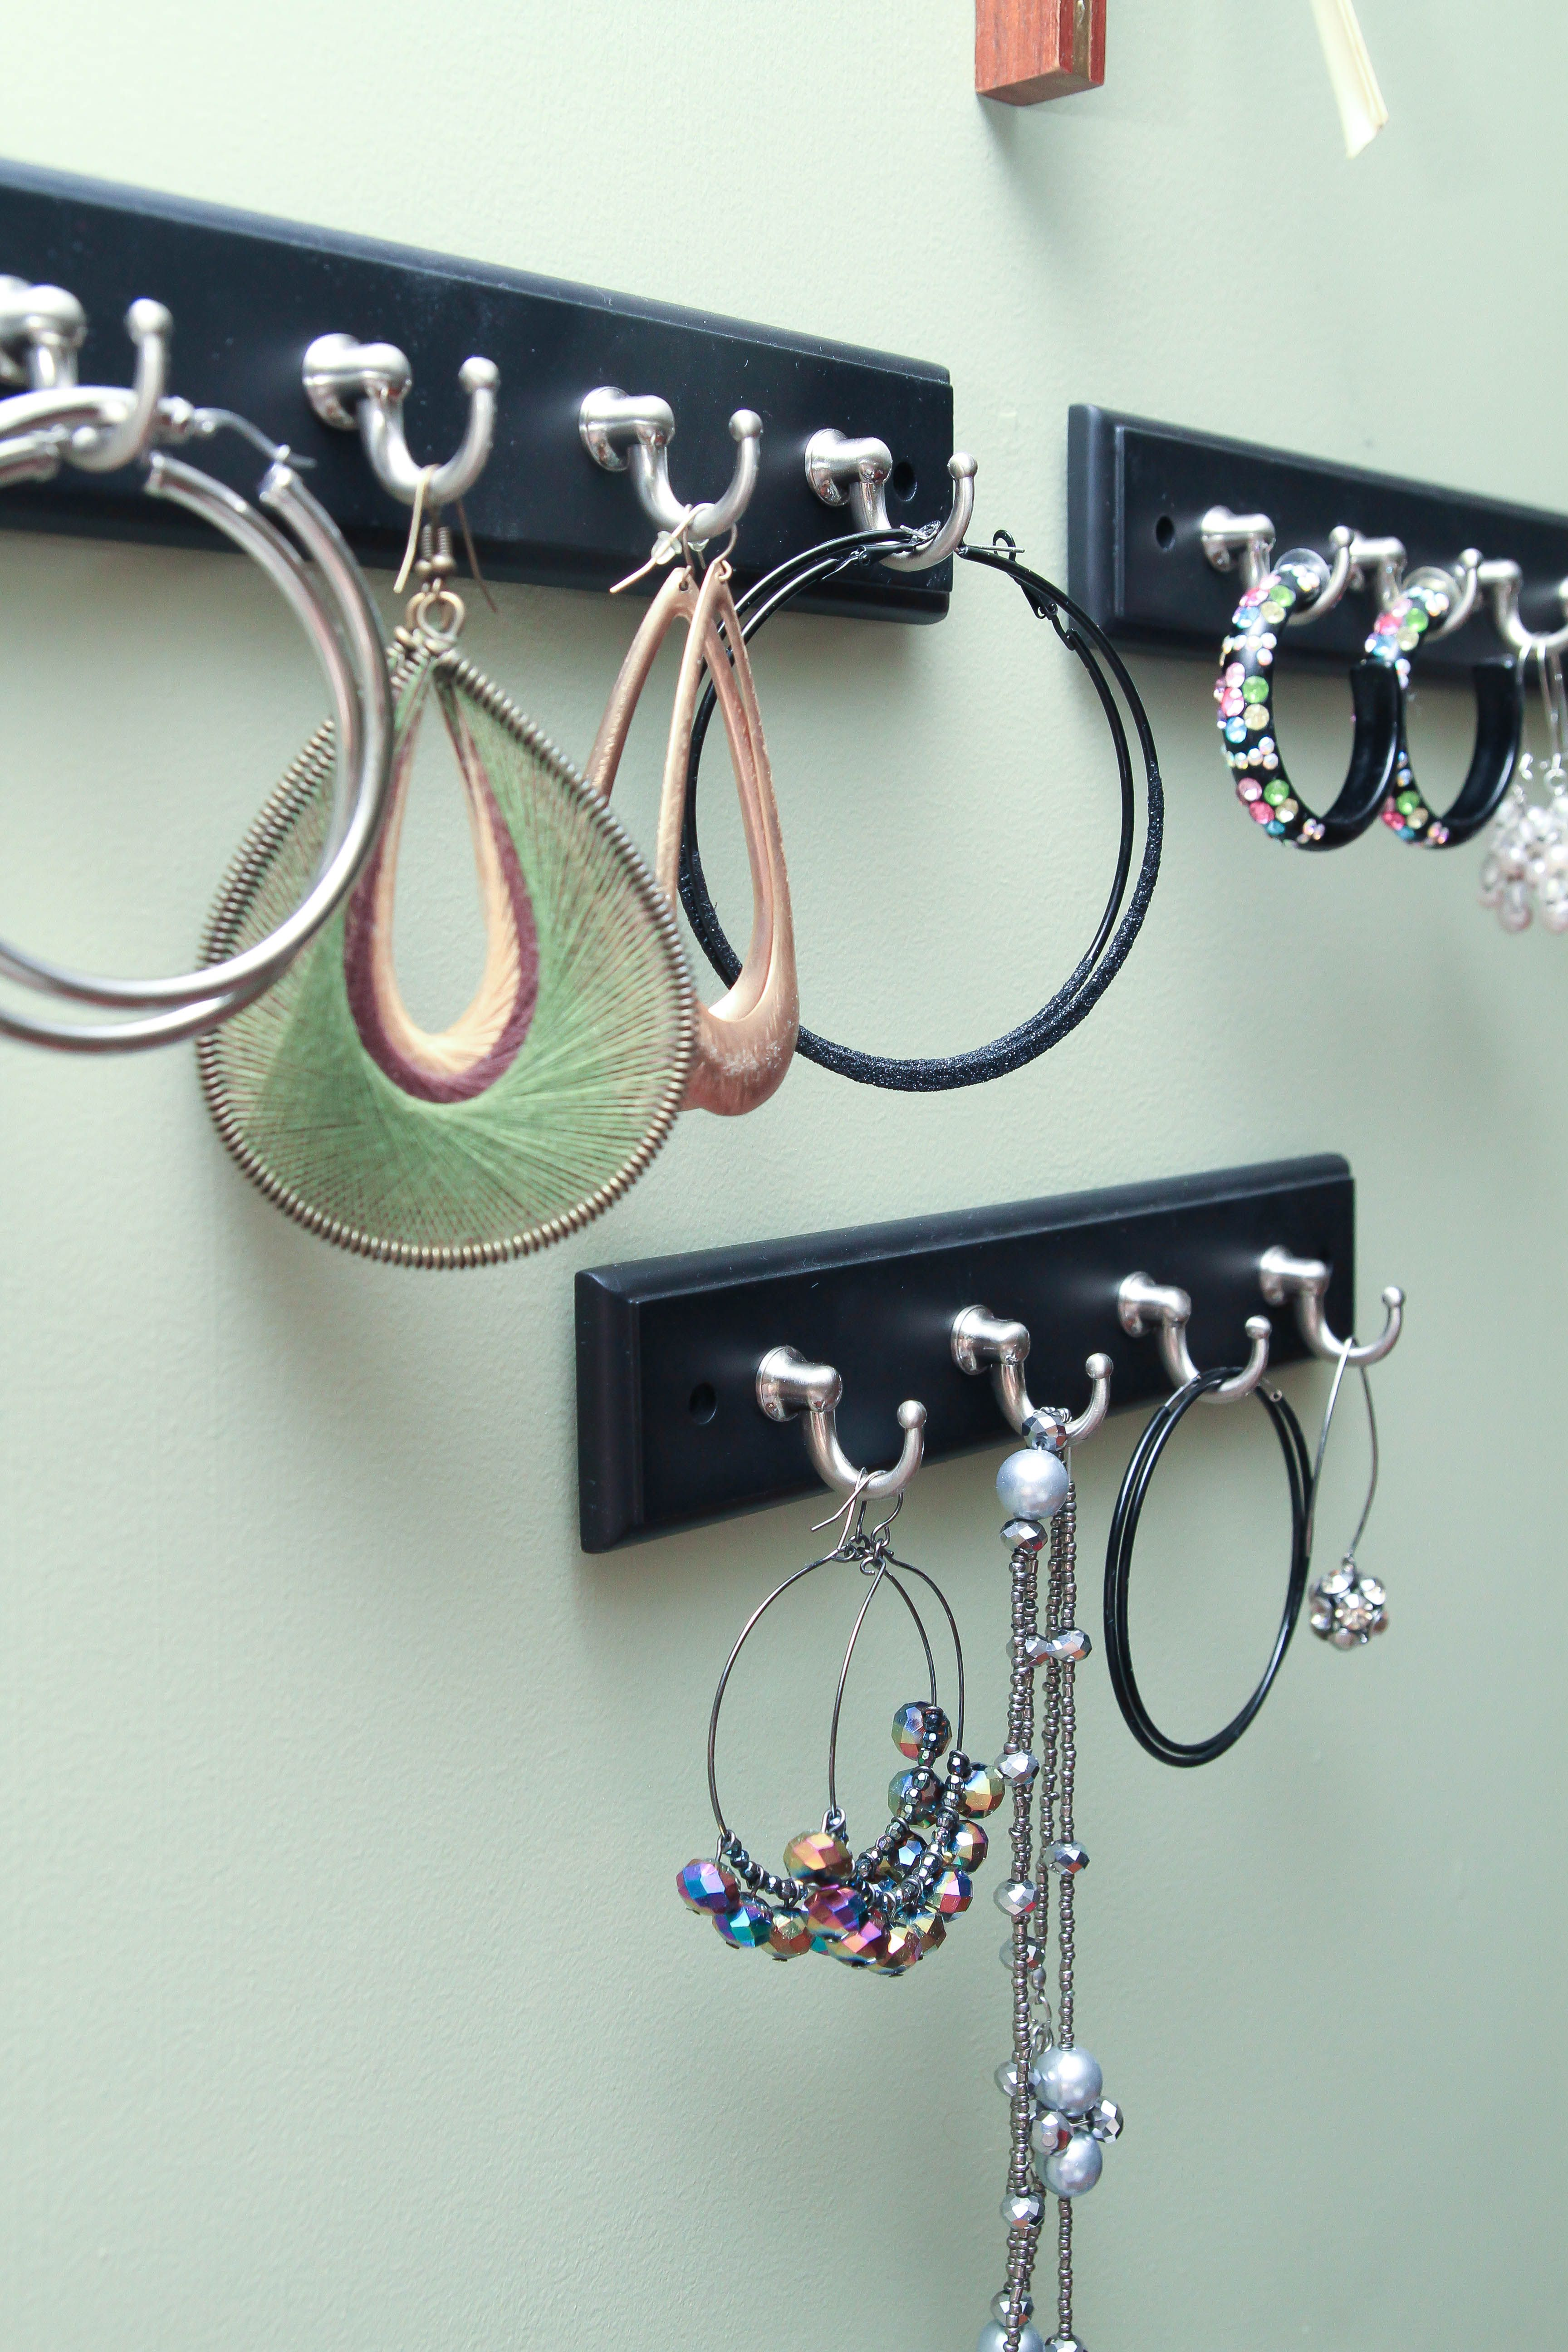 New Place To Hang All My Giant Ear Rings 3 M Command Strips